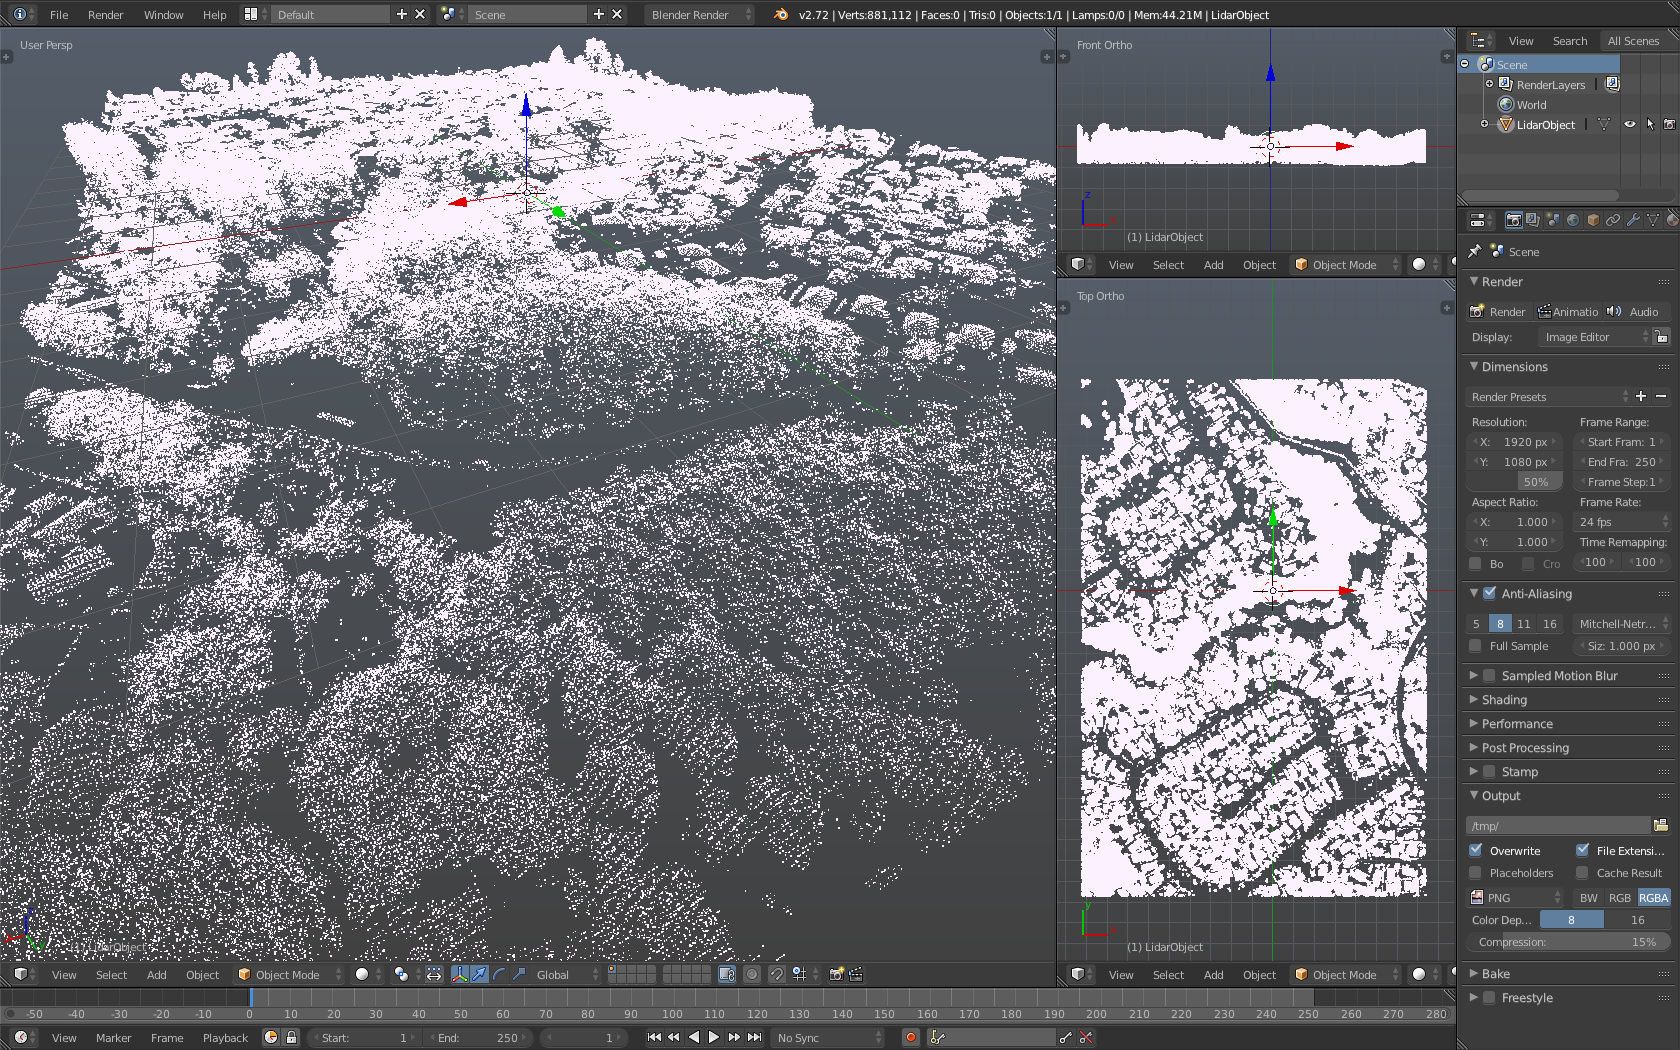 WIP] LiDAR Point Cloud Importer with 3D Object Recognition